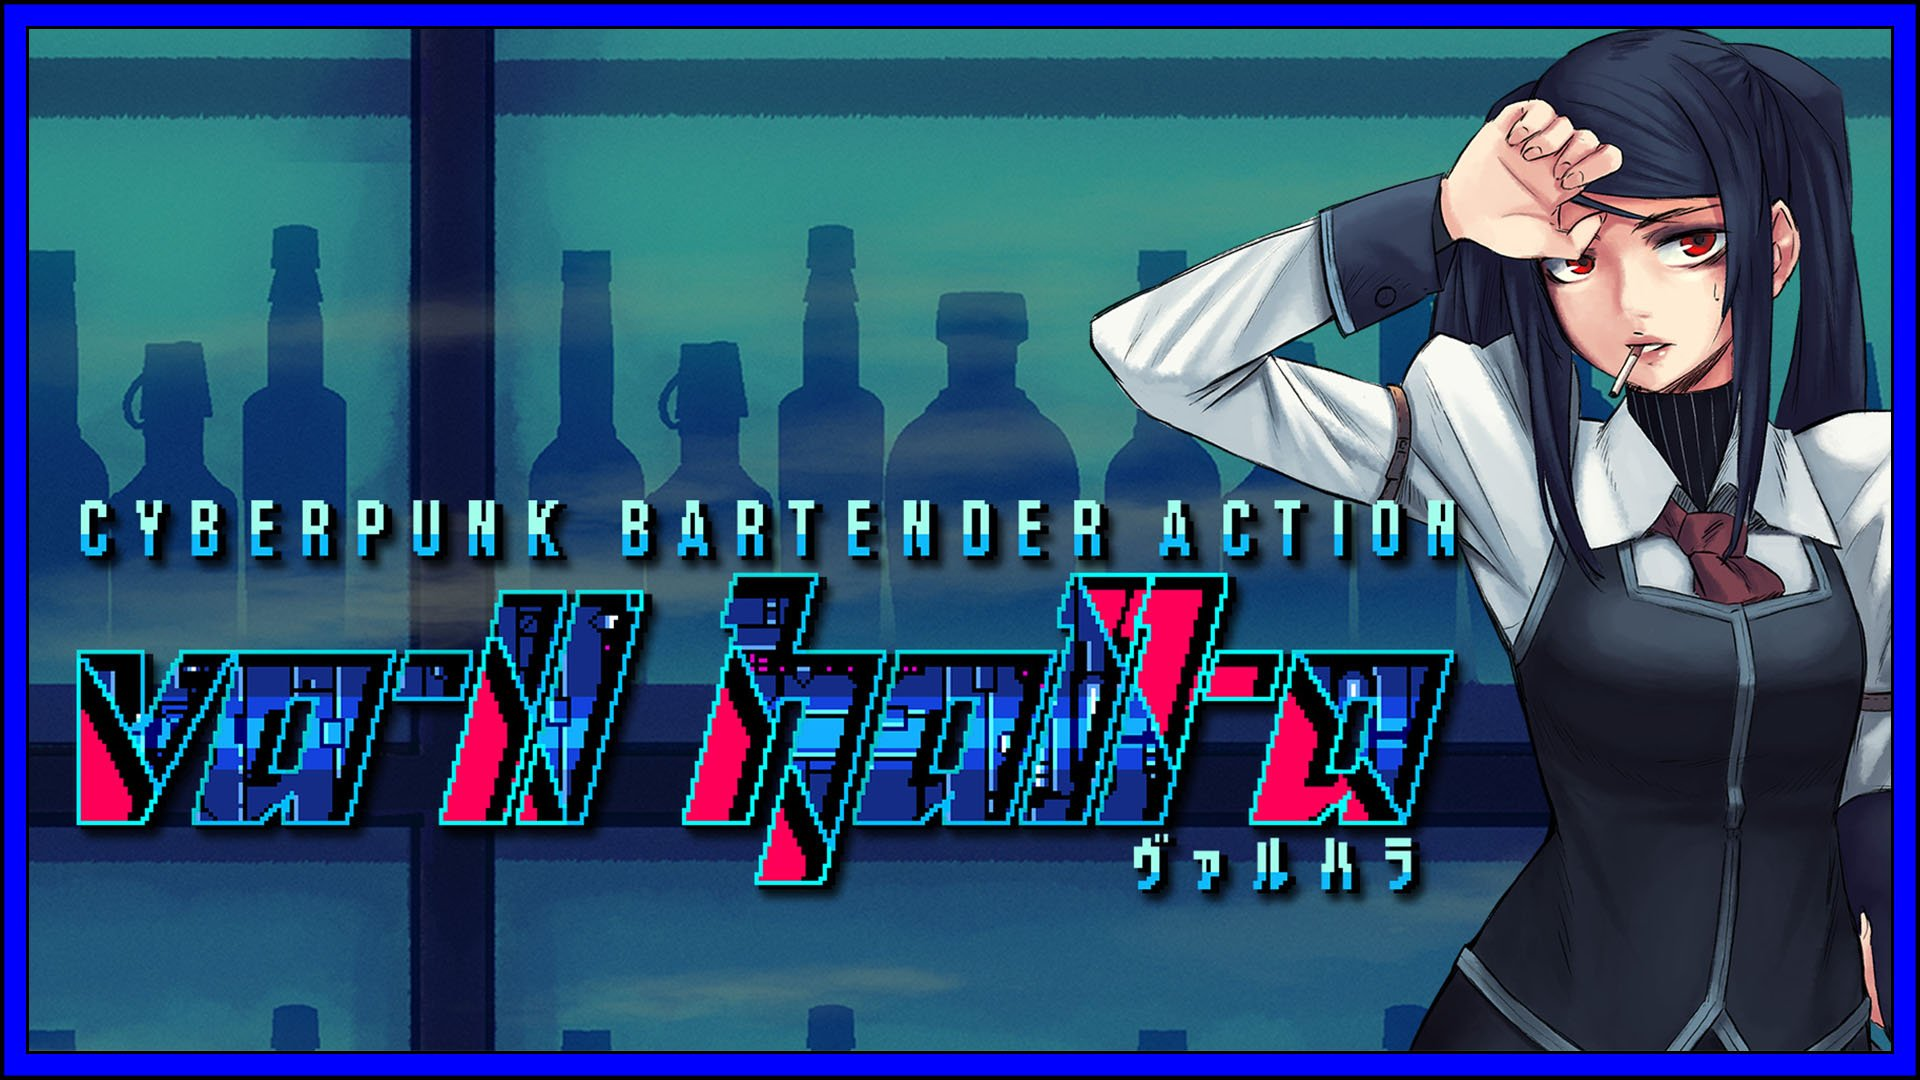 VA-11 HALL-A: Cyberpunk Bartender Action (PS4) Review